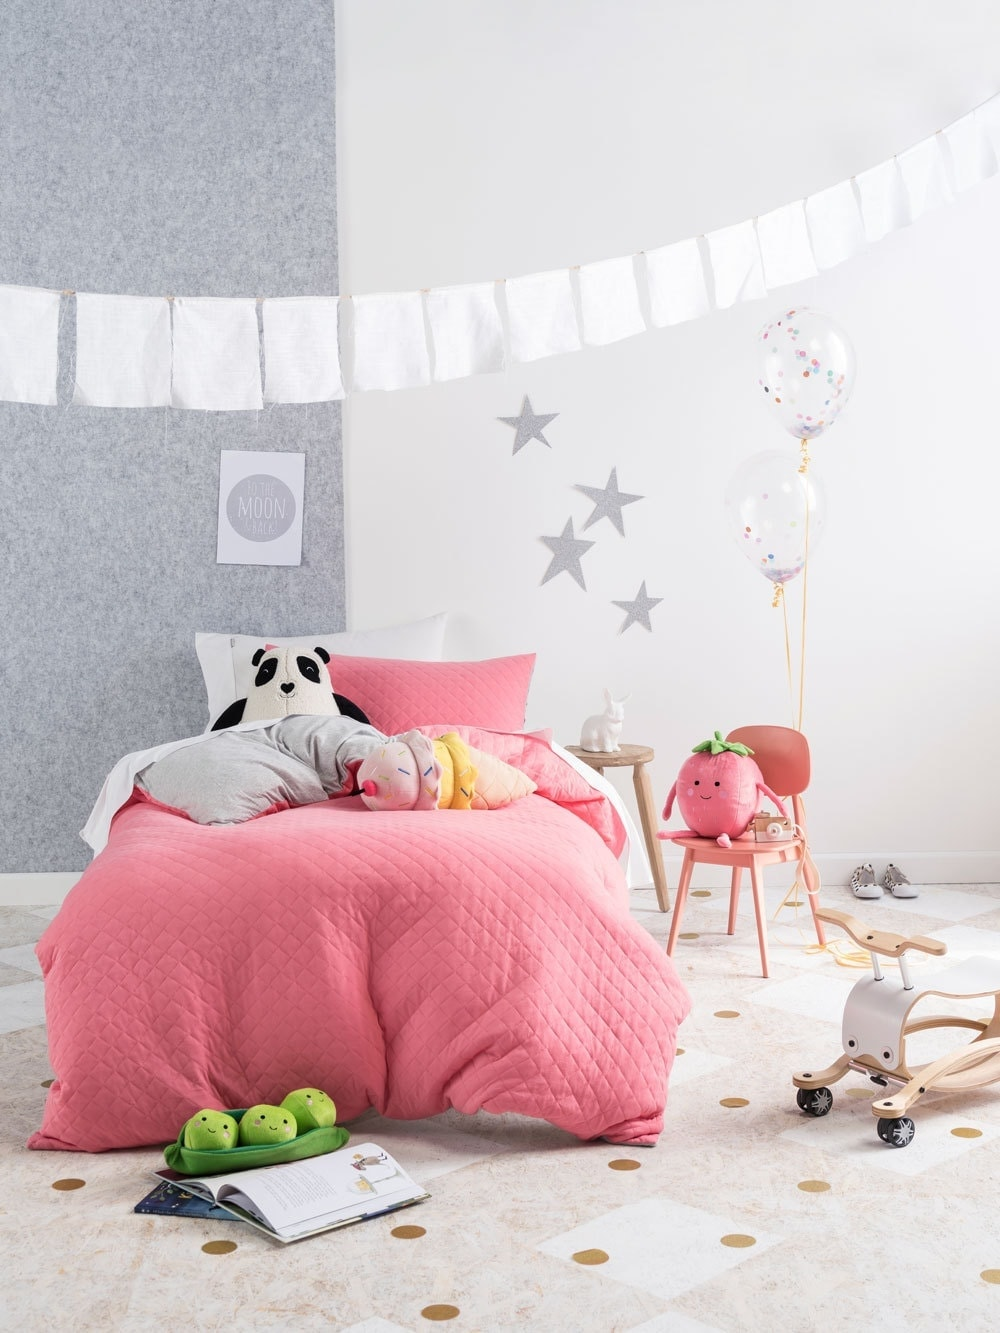 hot pink bedding ideas for girls from linen house